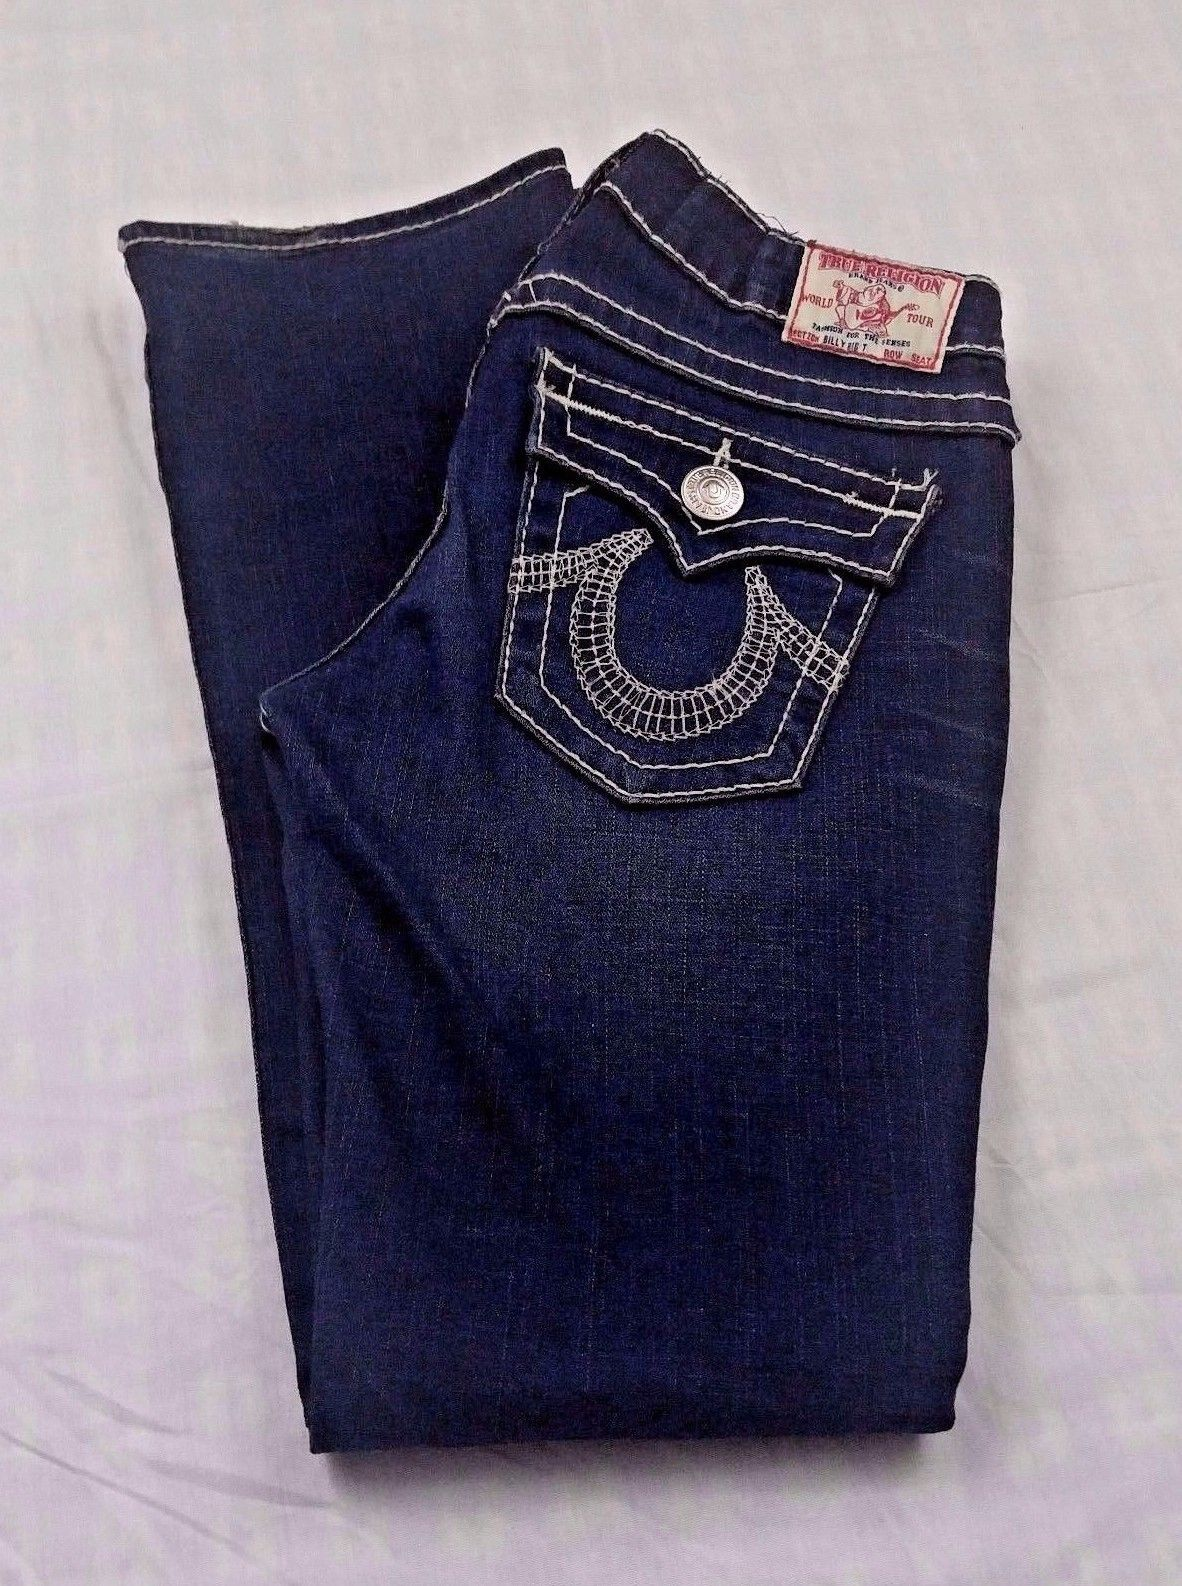 Primary image for True Religion Women's Jeans Billy Big T Dark Distress Blue Denim Jeans 28